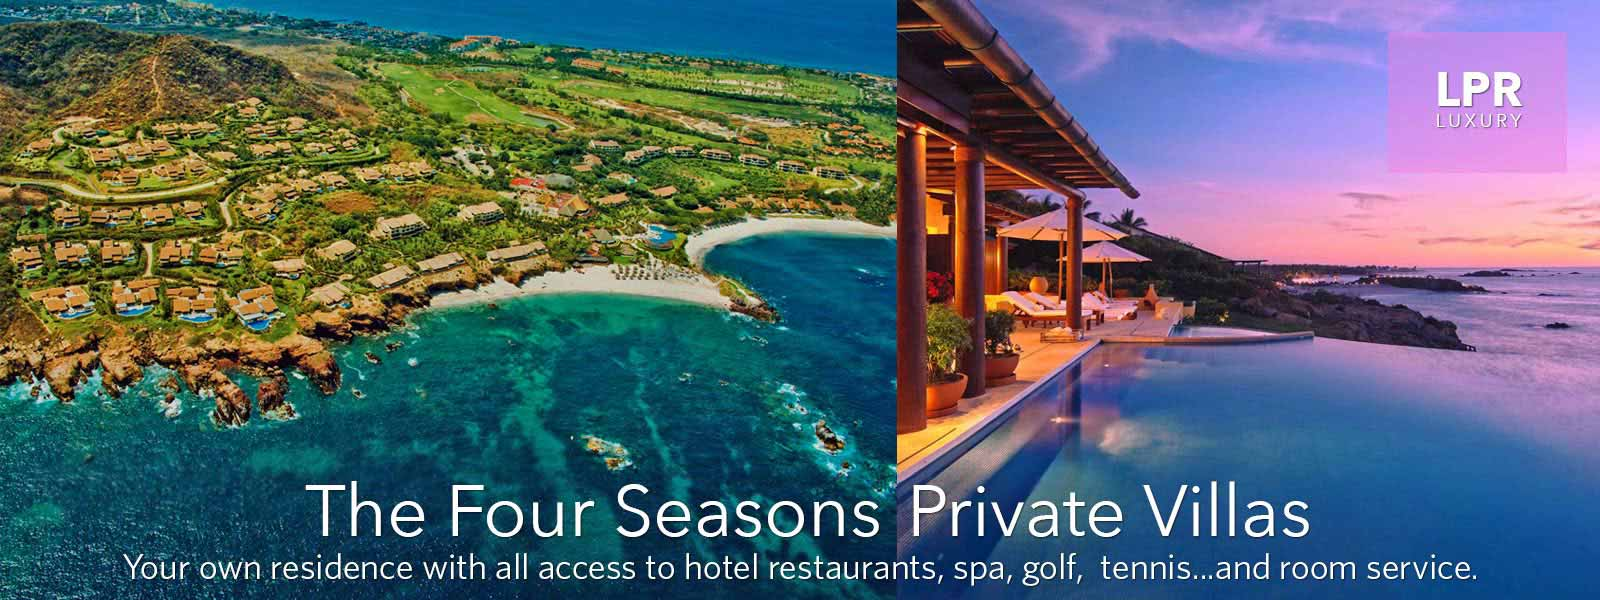 Four Seasons Punta Mita - The Four Seasons Private Villas - Luxury Punta Mita Real Estate and Vacation Villa Rentals